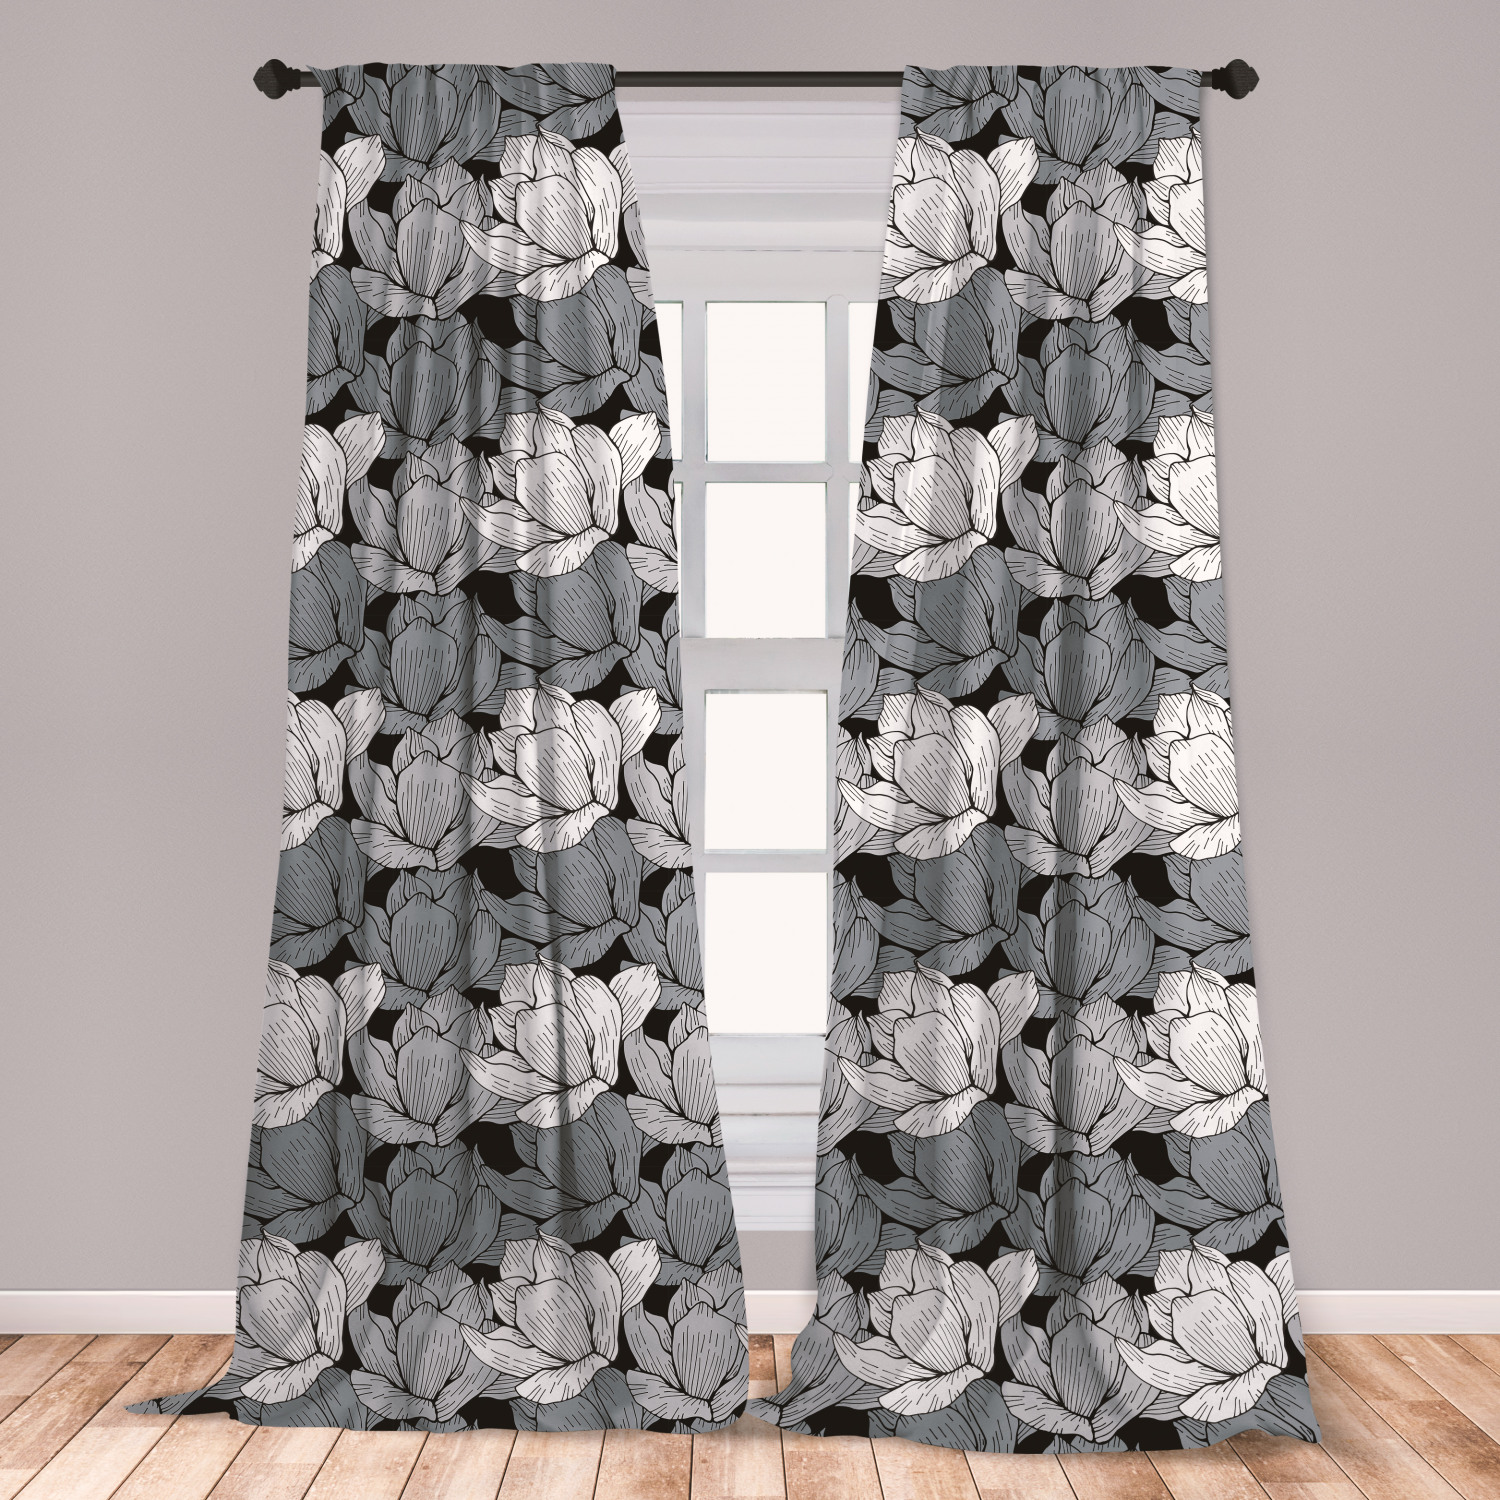 Floral Black And Grey Nature Tattoo: Black And Grey Curtains 2 Panels Set, Floral Arrangement